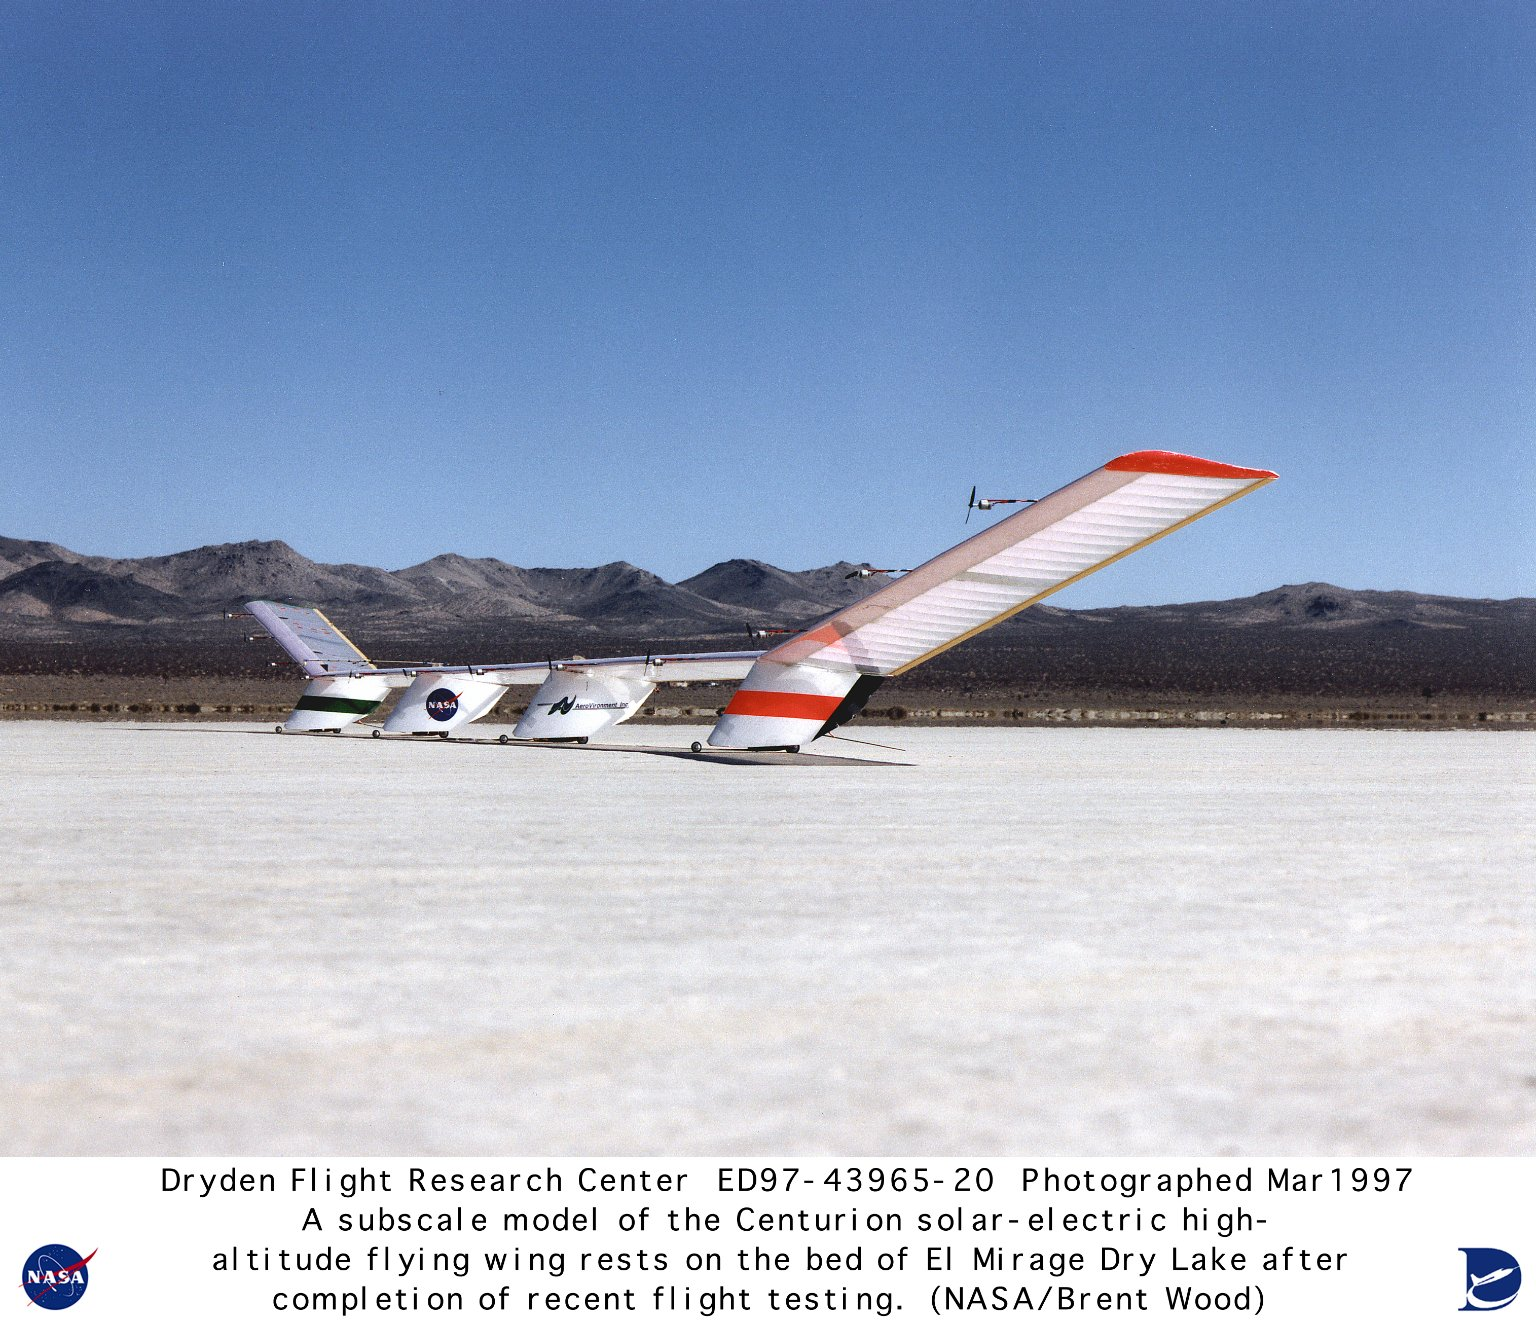 Quarter-scale Model of Solar-powered Centurion Ultra-high-altitude Flying Wing on Lakebed